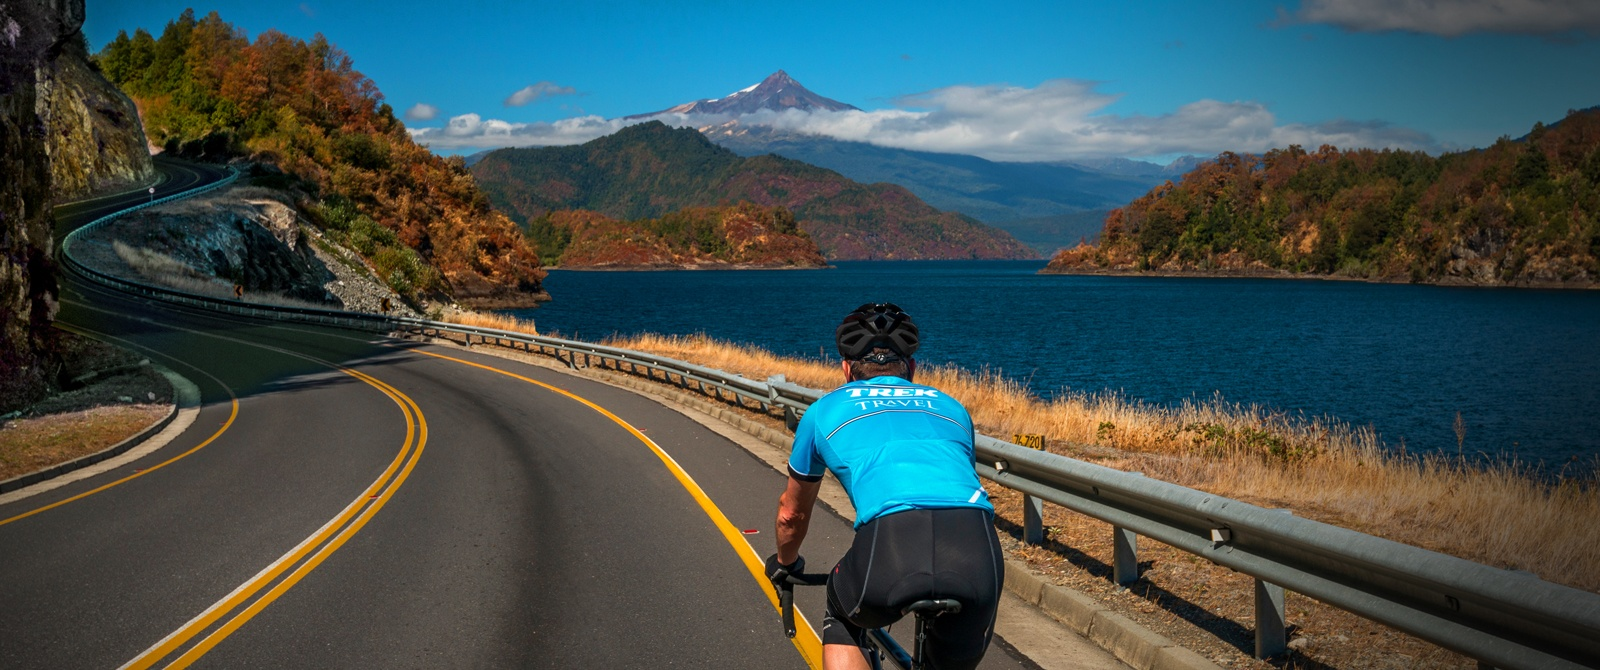 Request a Trek Travel catalog to start planning your vacation of a lifetime today!